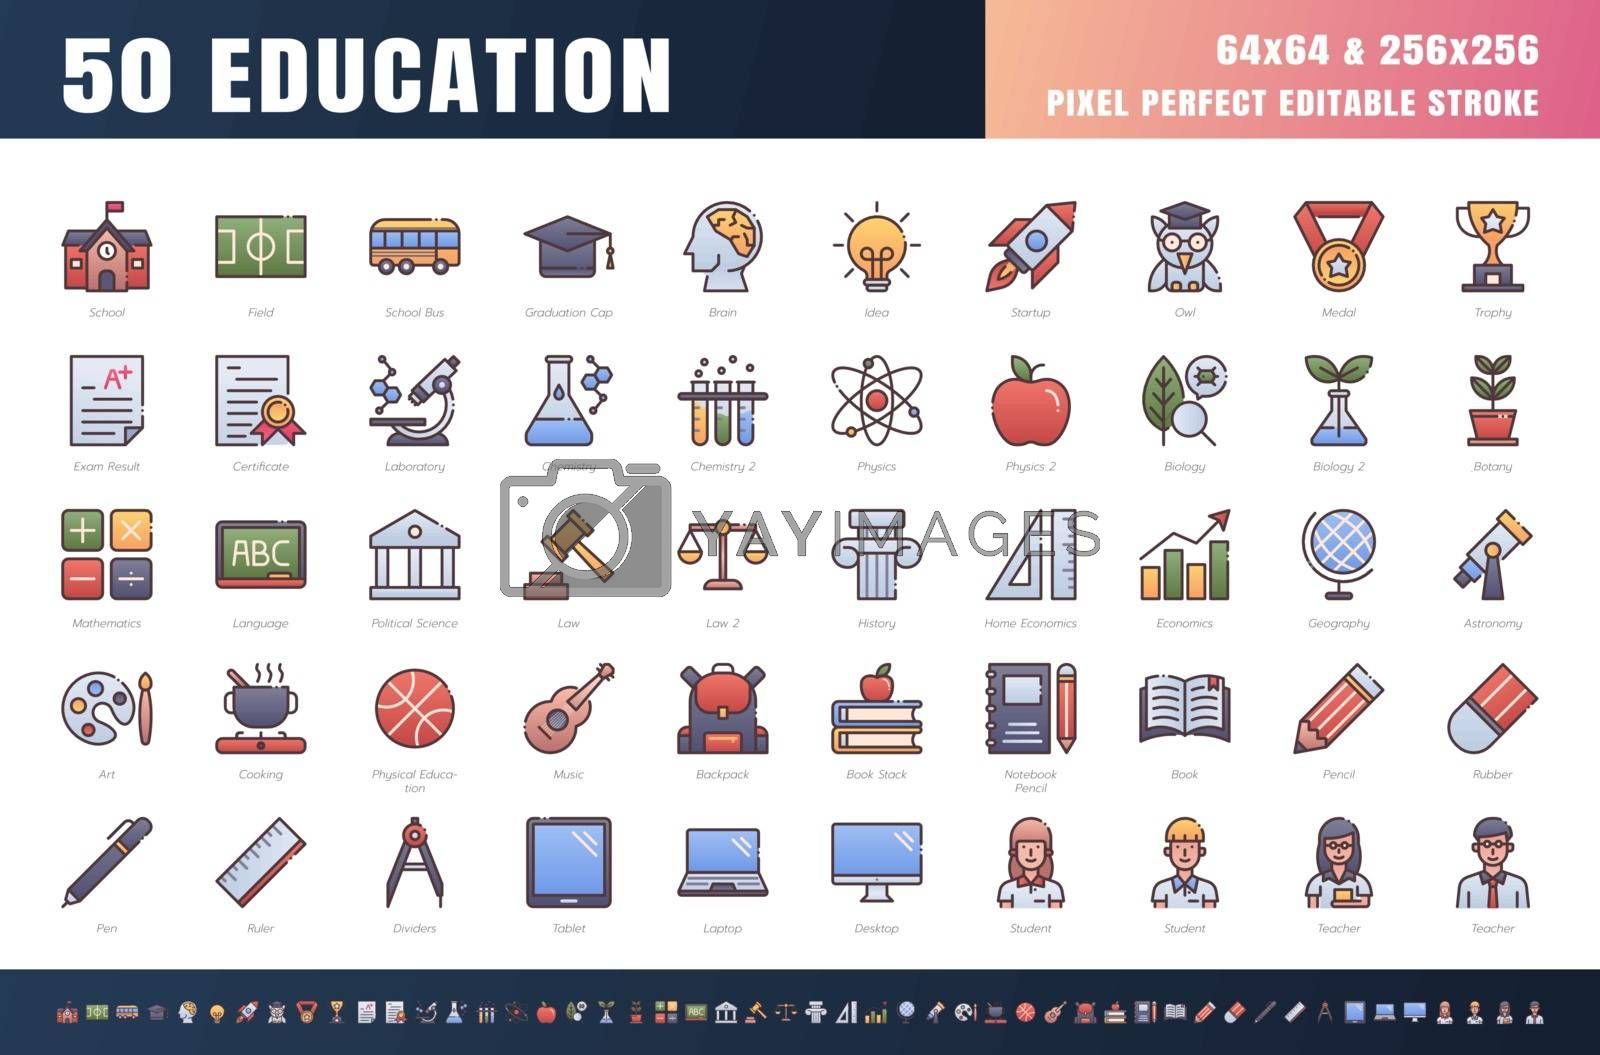 Vector of 50 Education and School Subject. Filled Gradient Color Line Outline Icon Set. 64x64 and 256x256 Pixel Perfect Editable Stroke. Vector.